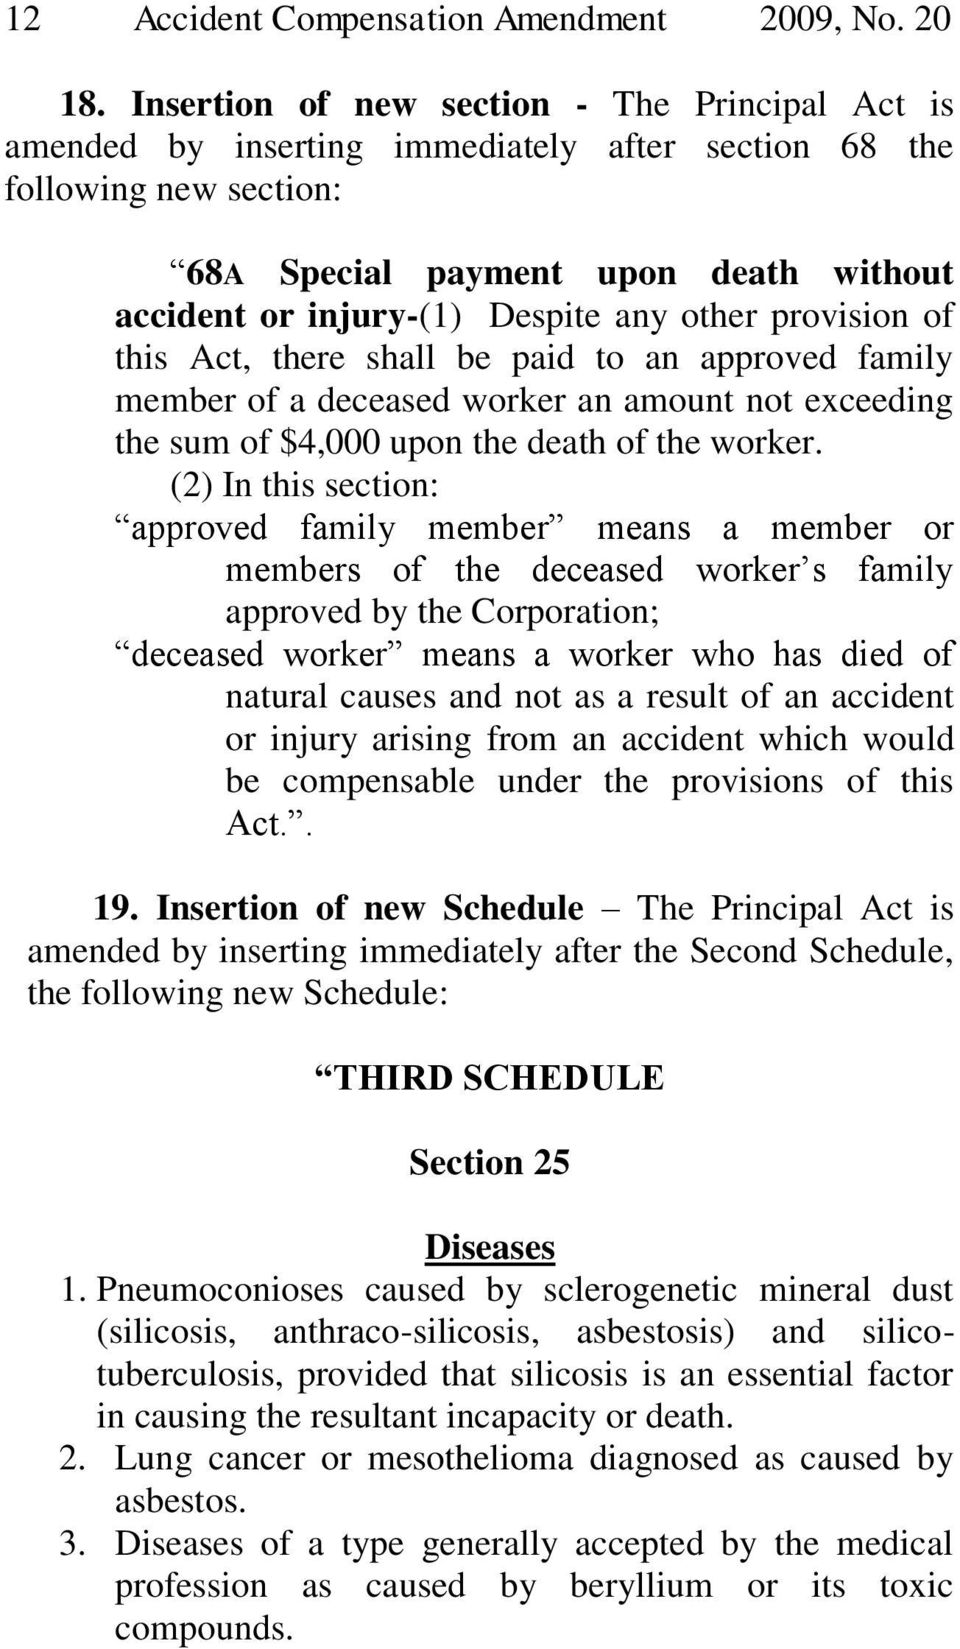 other provision of this Act, there shall be paid to an approved family member of a deceased worker an amount not exceeding the sum of $4,000 upon the death of the worker.